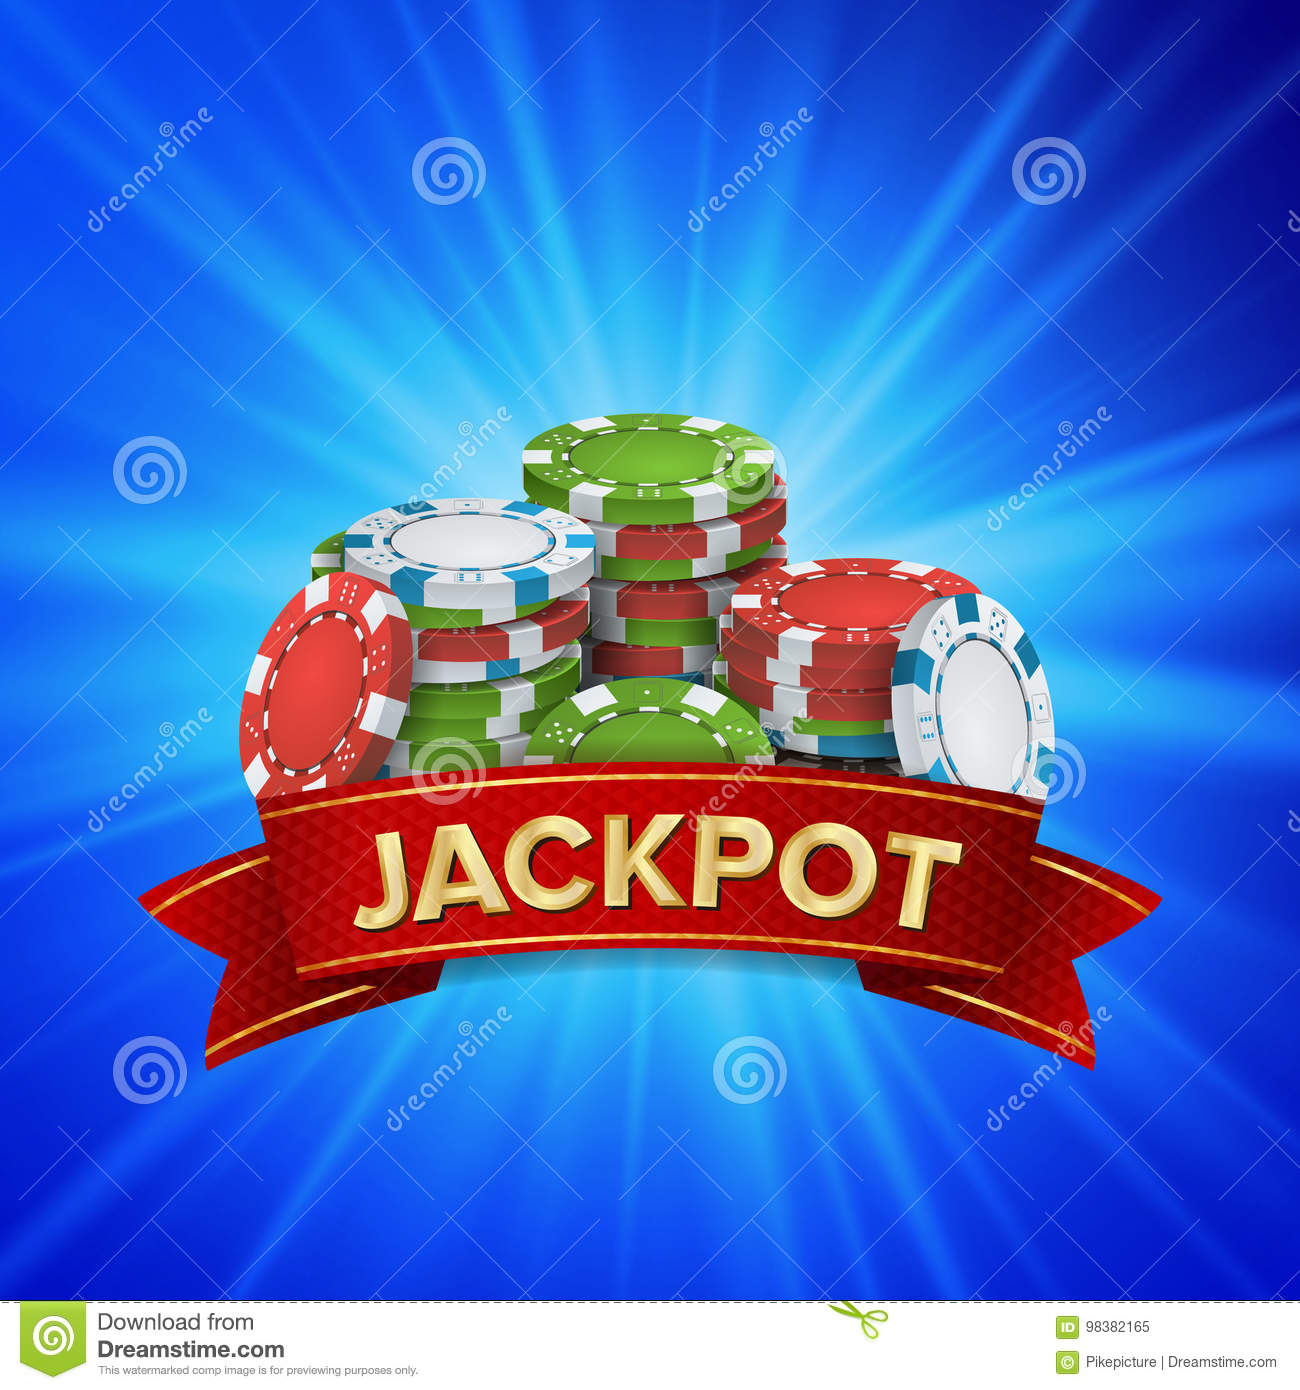 Jackpot Big Win Sign Vector Background. Design For Online Casino, Poker, Roulette, Slot Machines, Playing Cards, Mobile